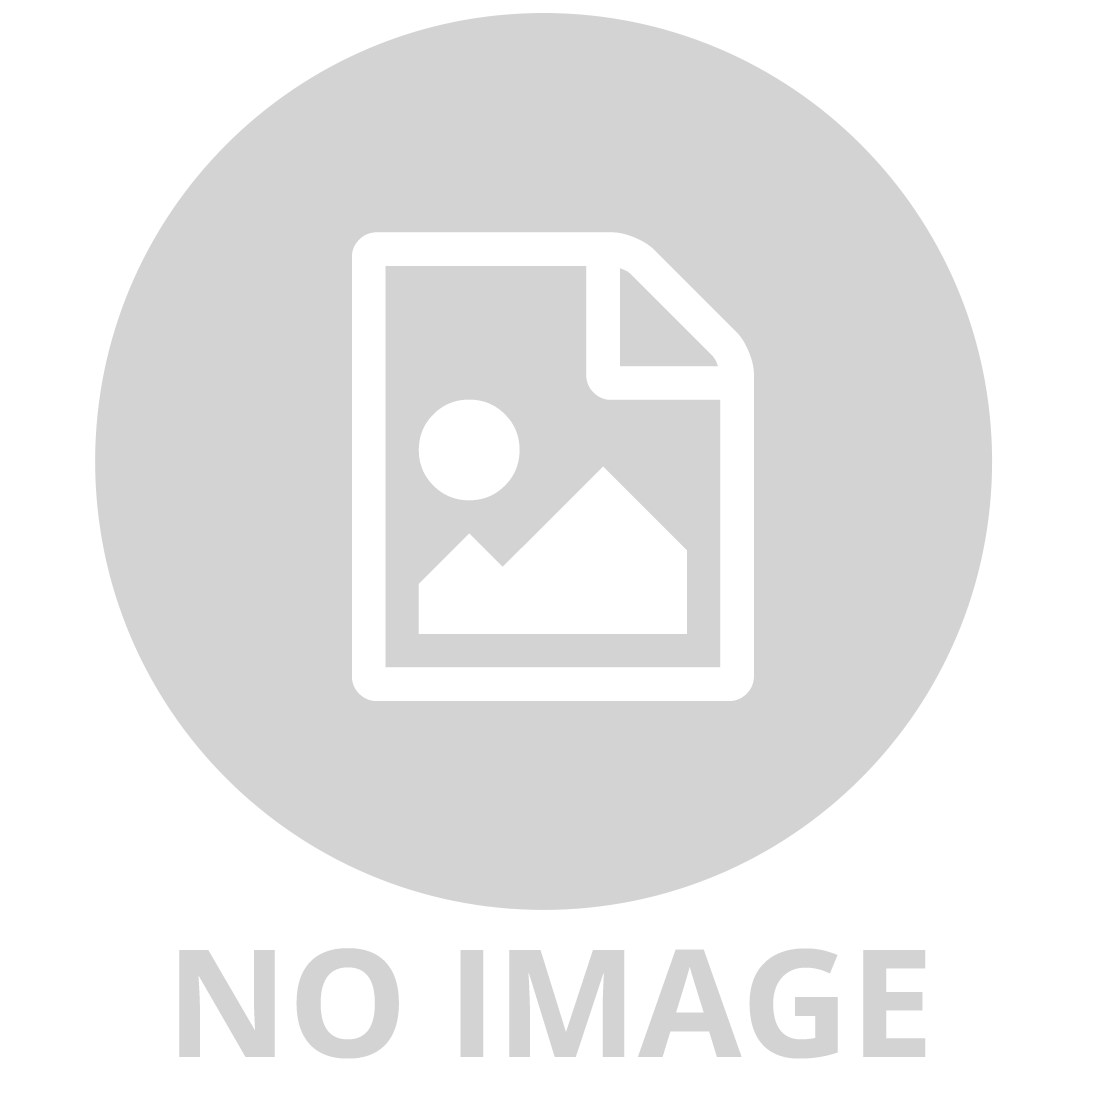 KOTA MANIA SCOOTER BLUE/WHITE